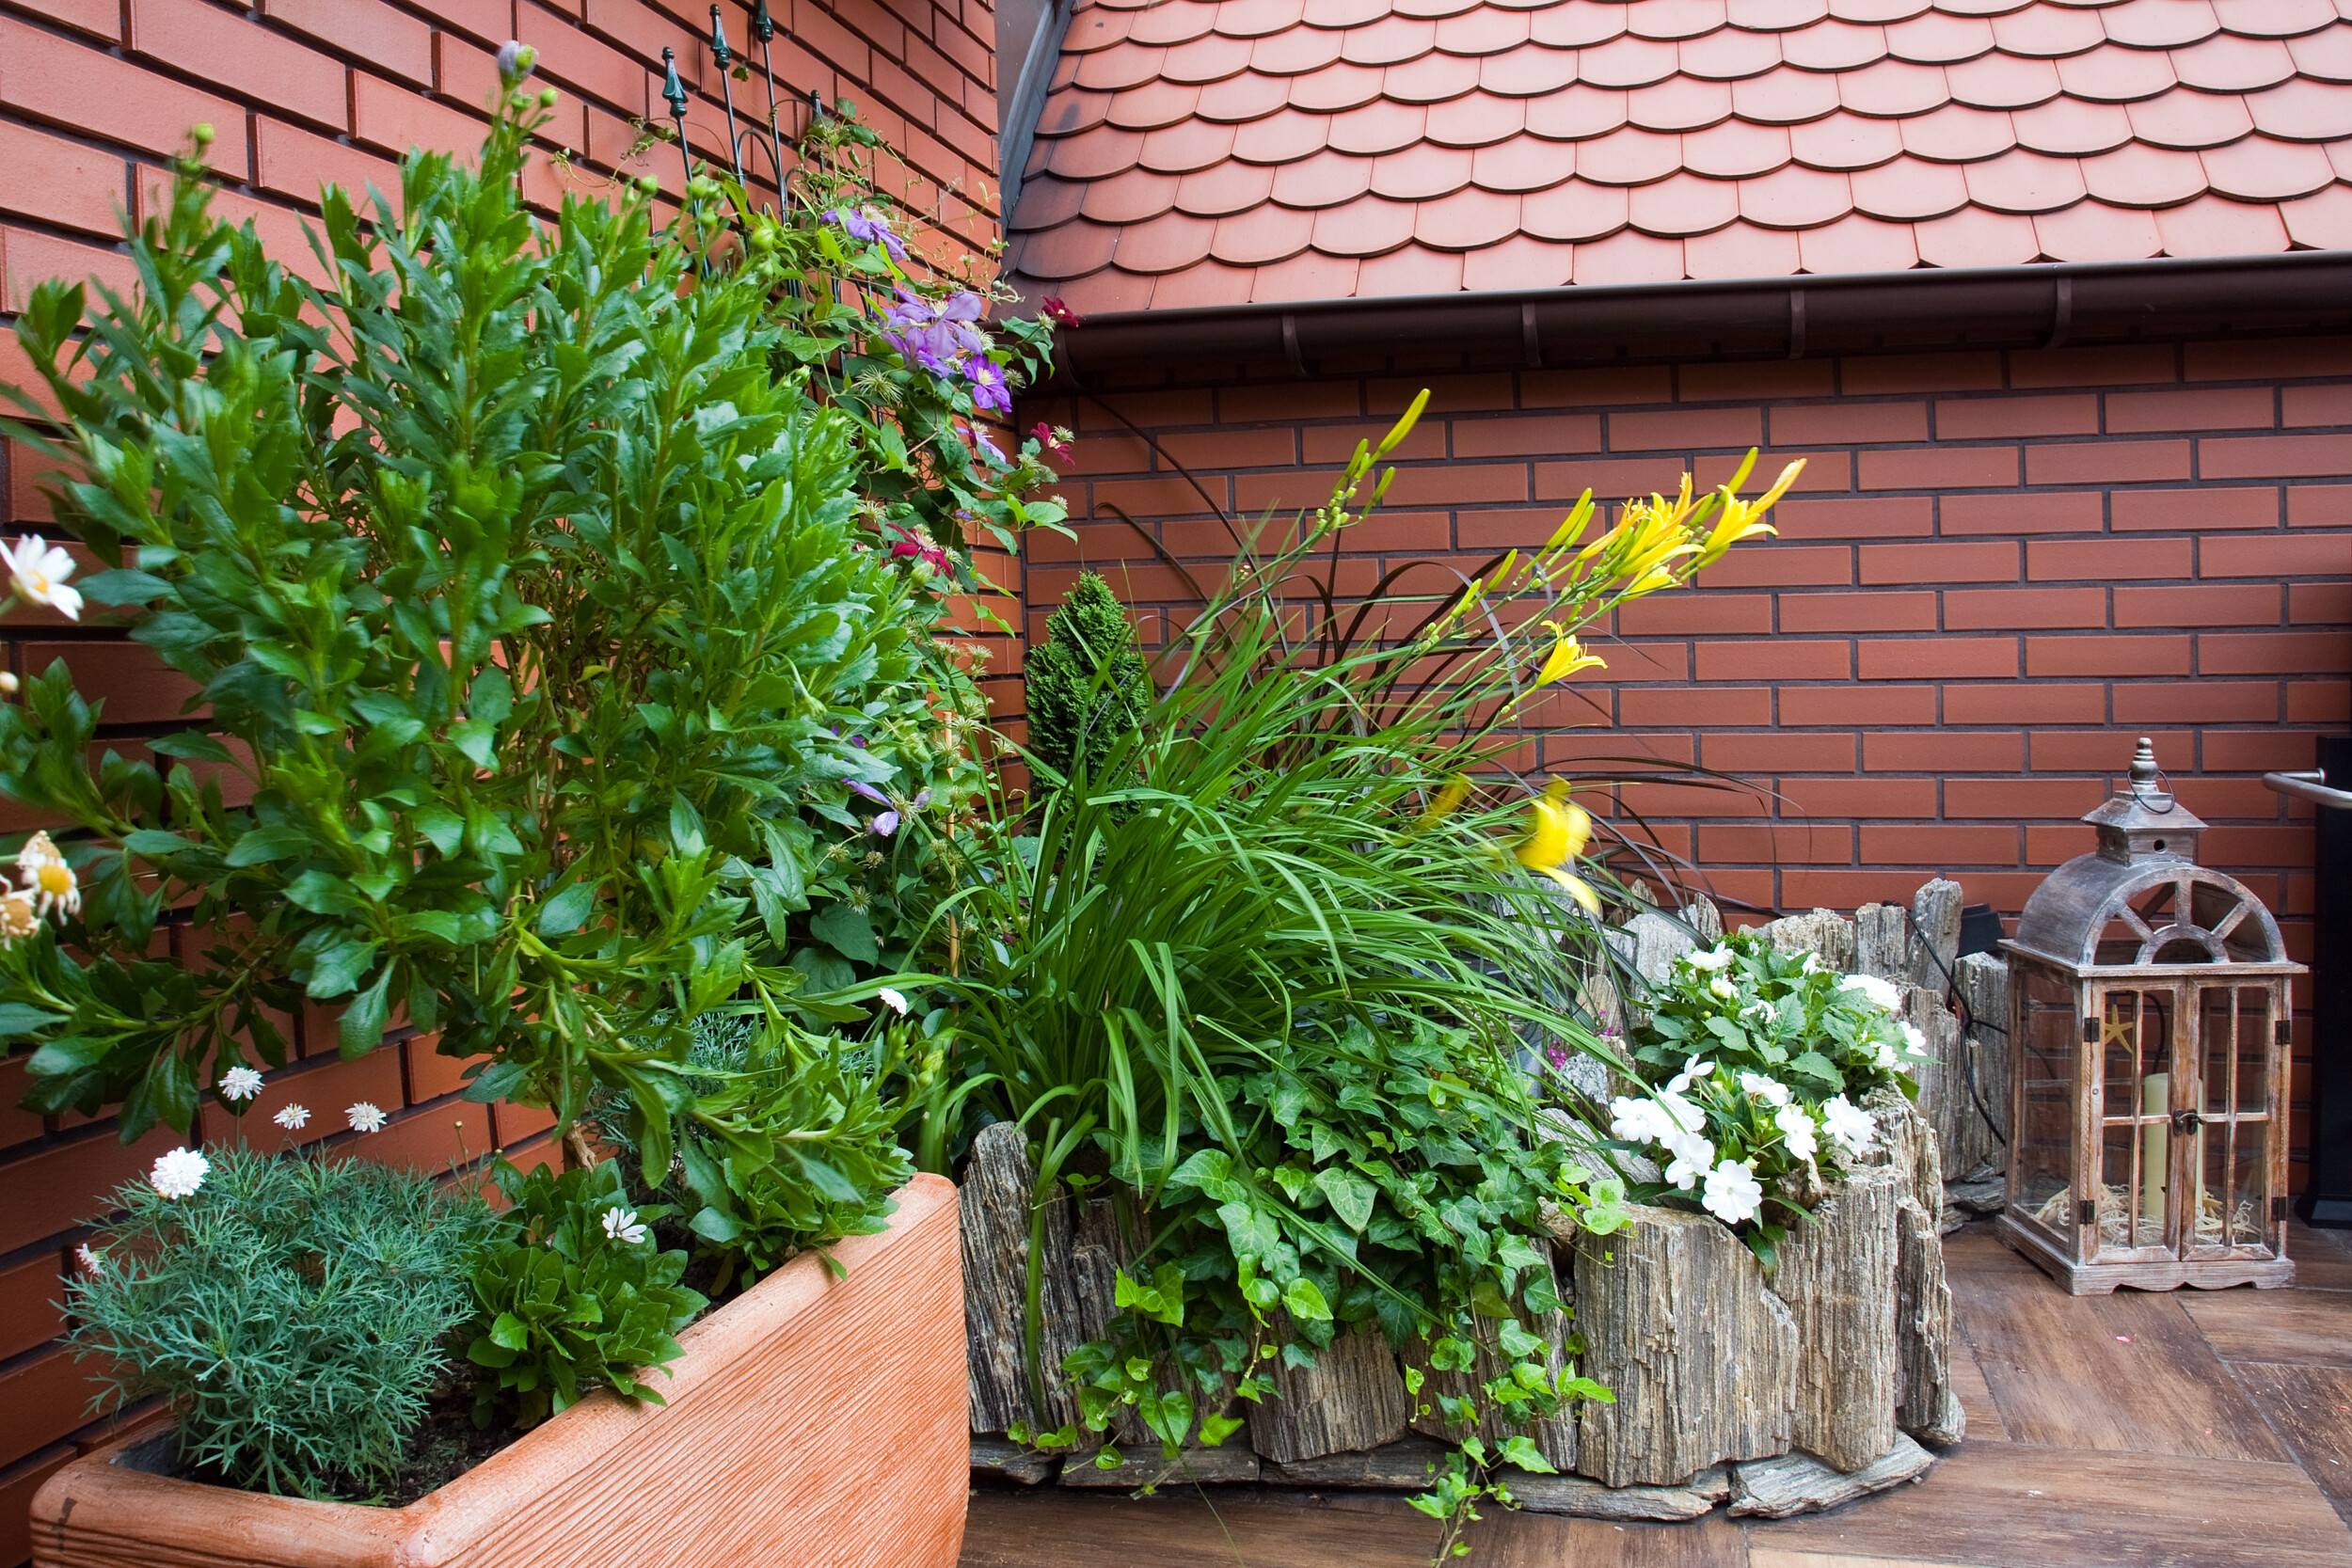 outdoor deck with potted plants